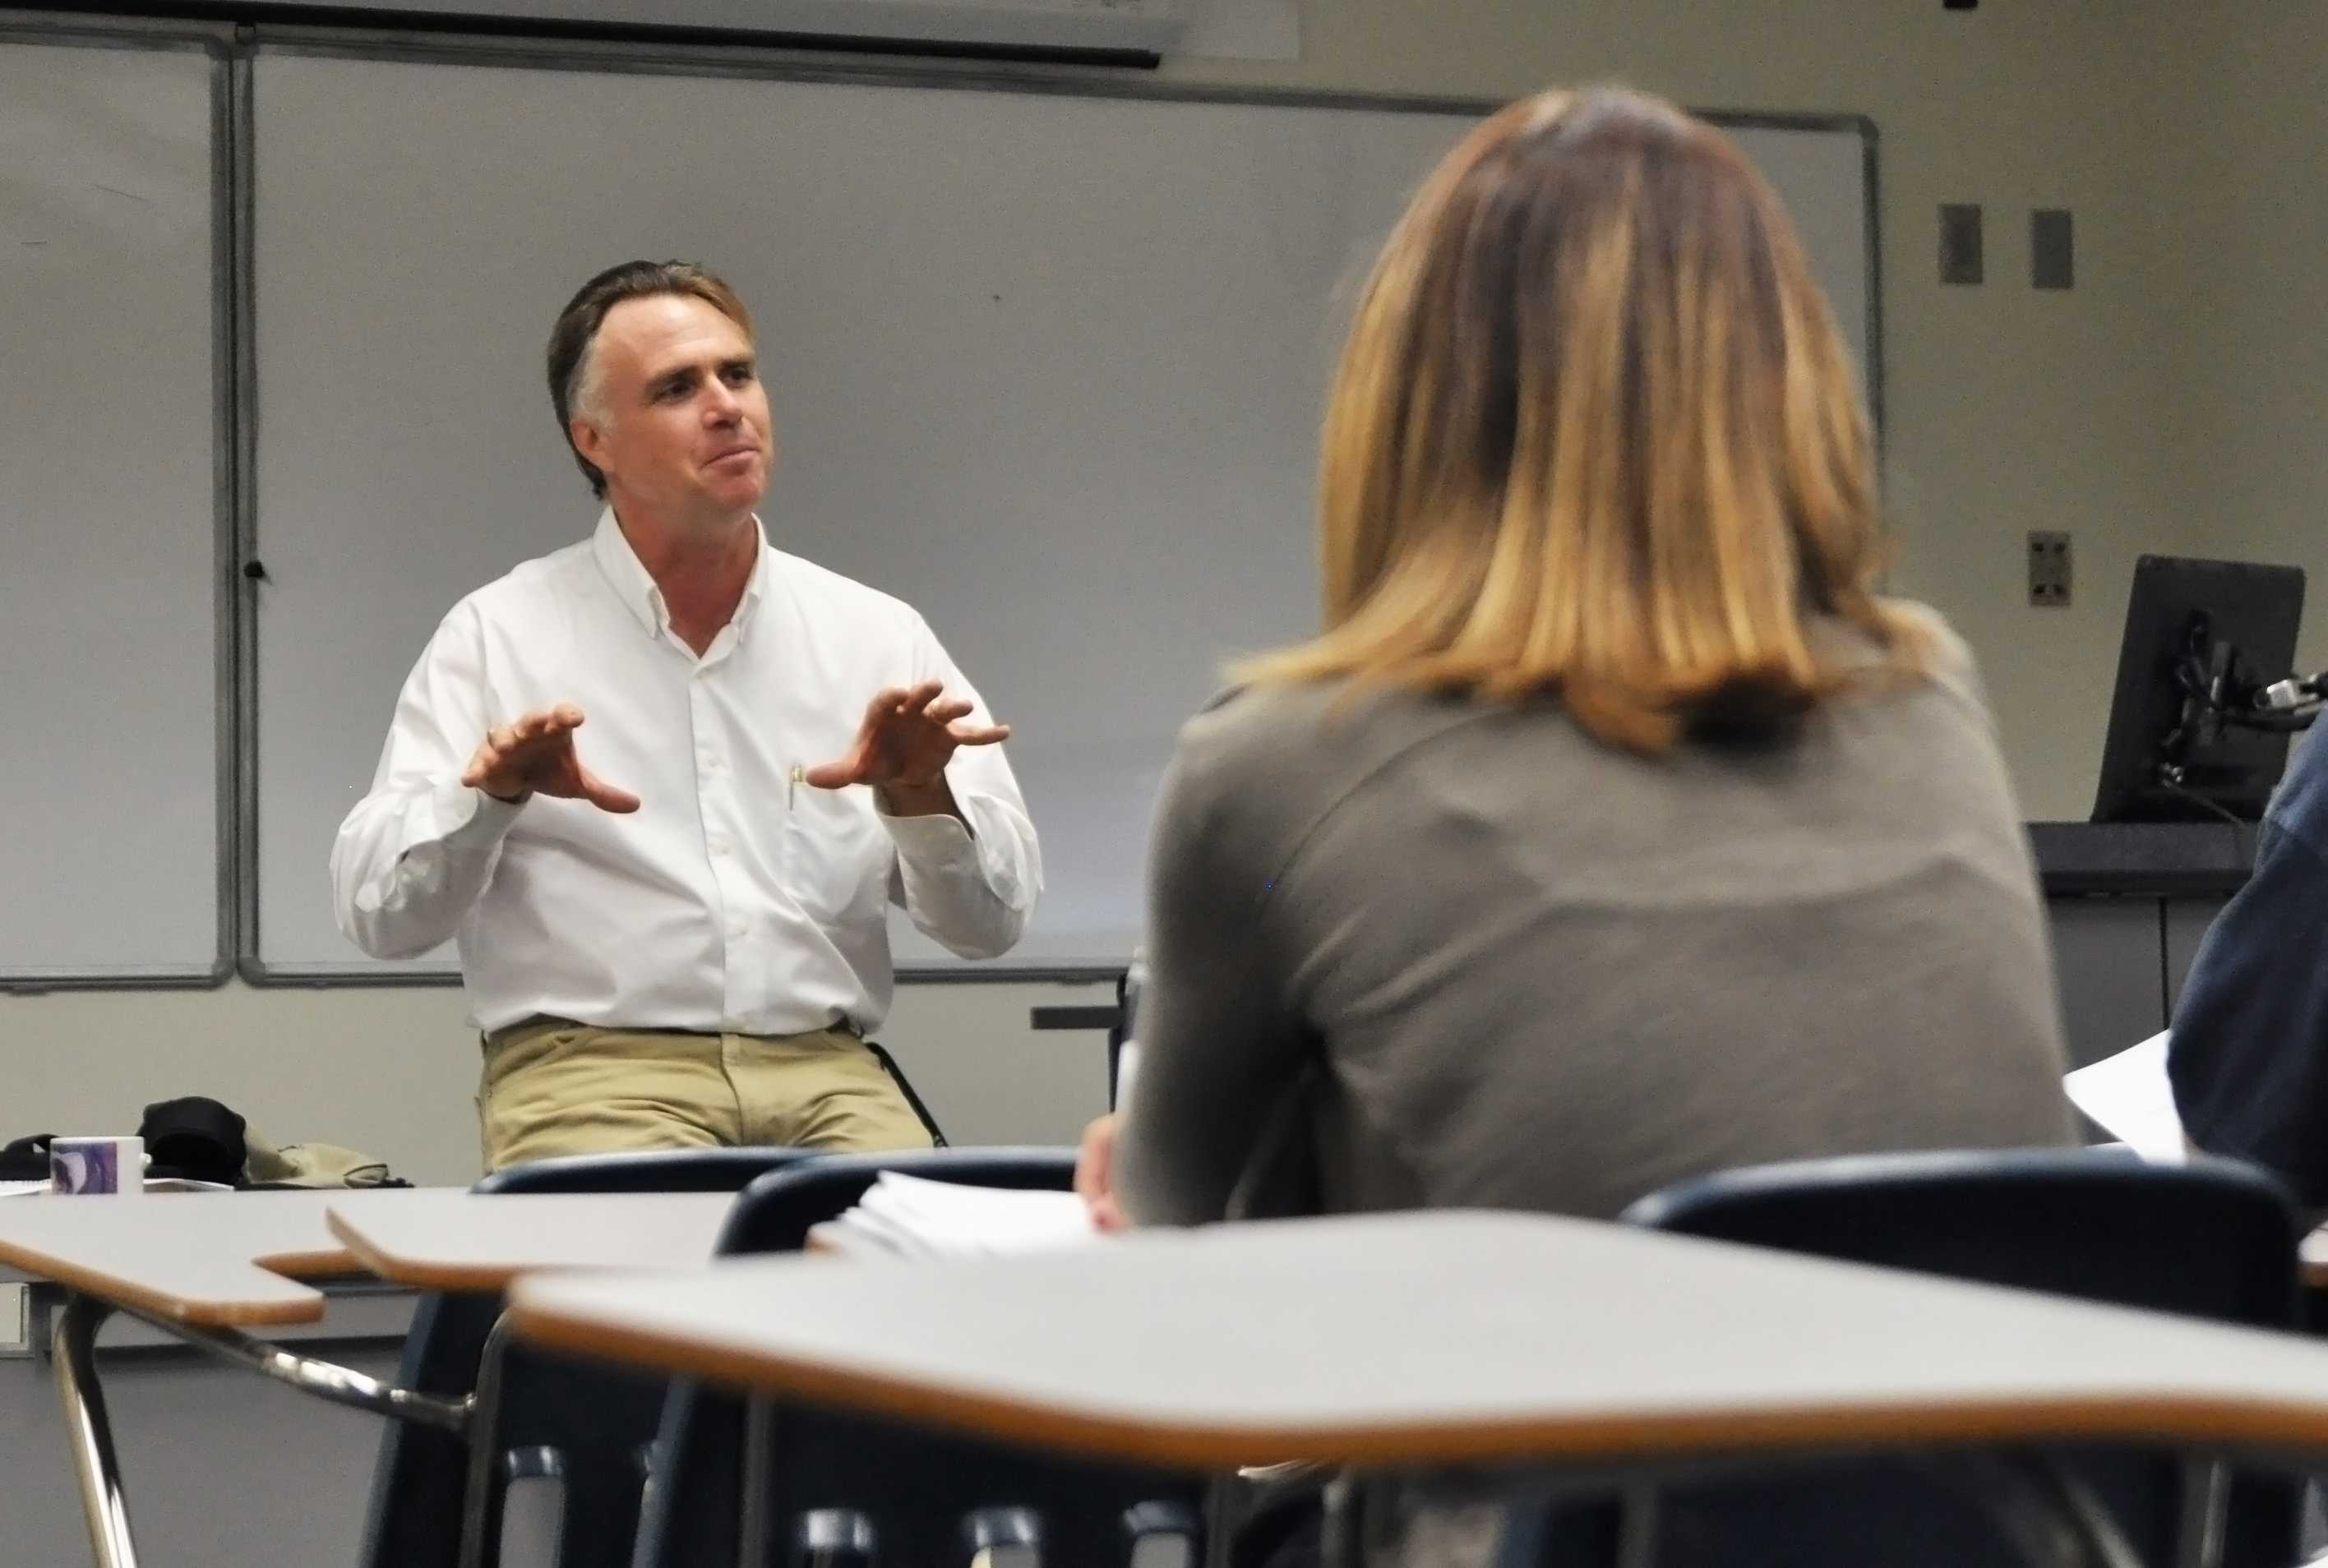 James Tracy introduces himself in his first class of the semester following the media coverage of his blog posts about the Newtown shooting. Photo by Michelle Friswell